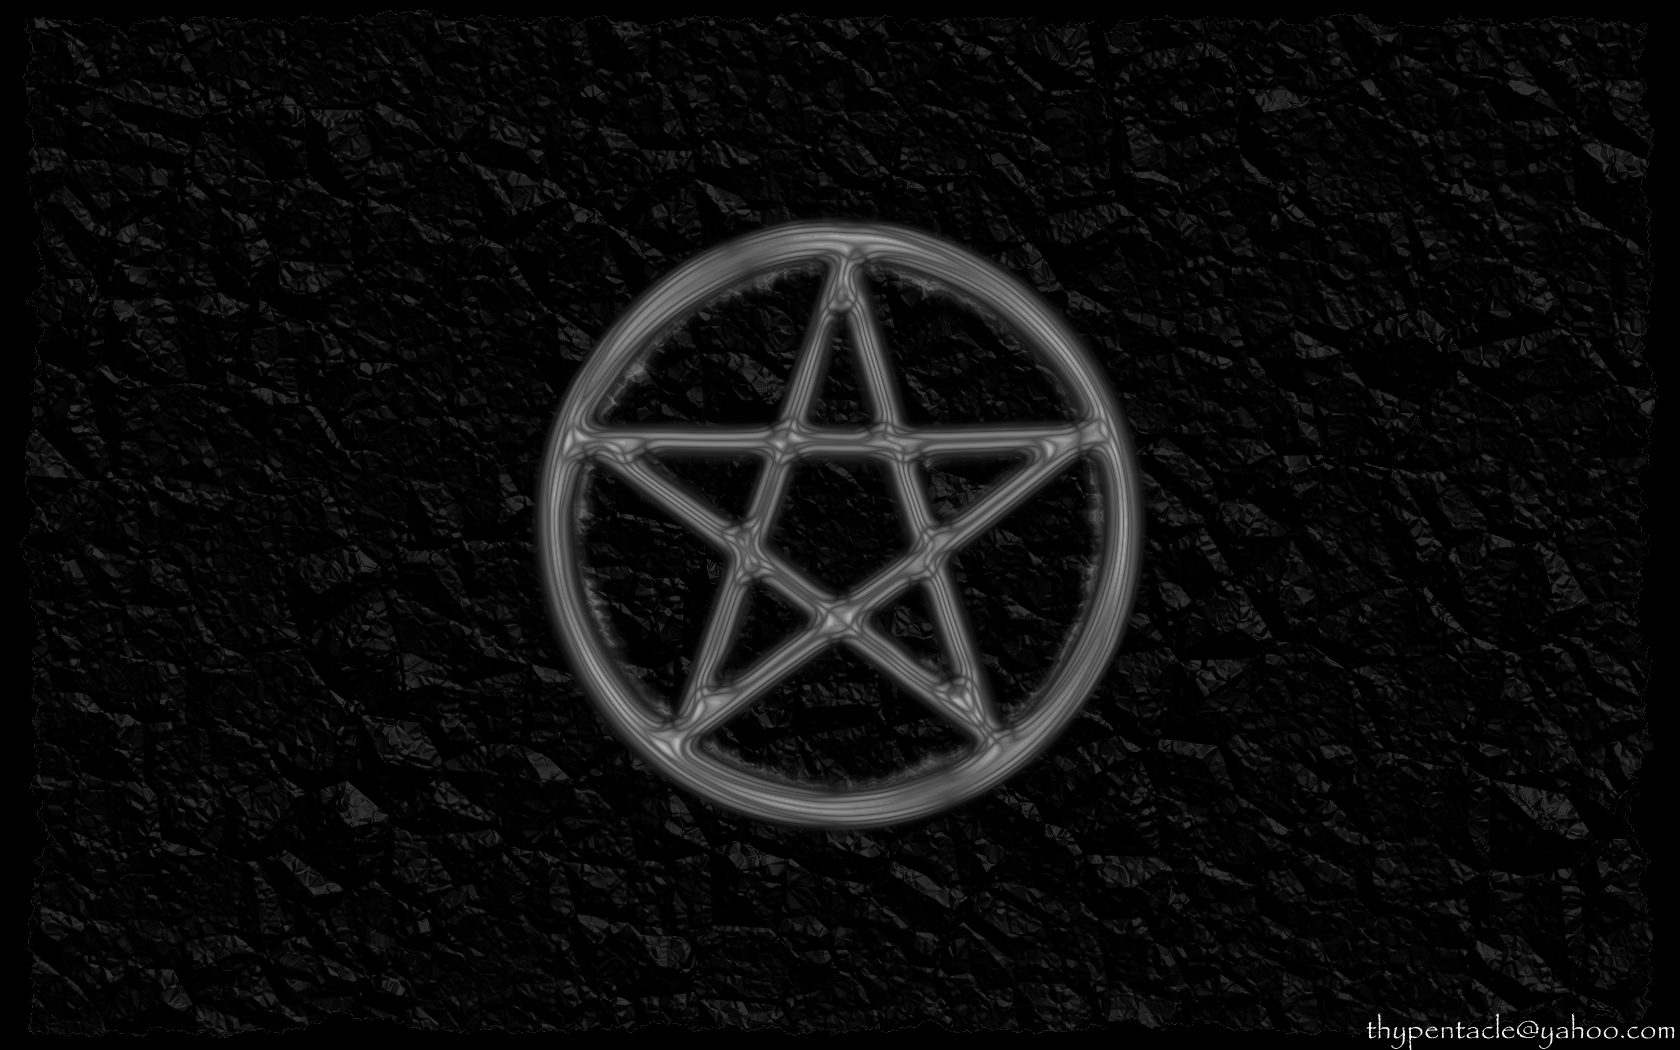 Wicca Pagan Witchcraft Wallpapers Wallpapers for your desktop 1680x1050